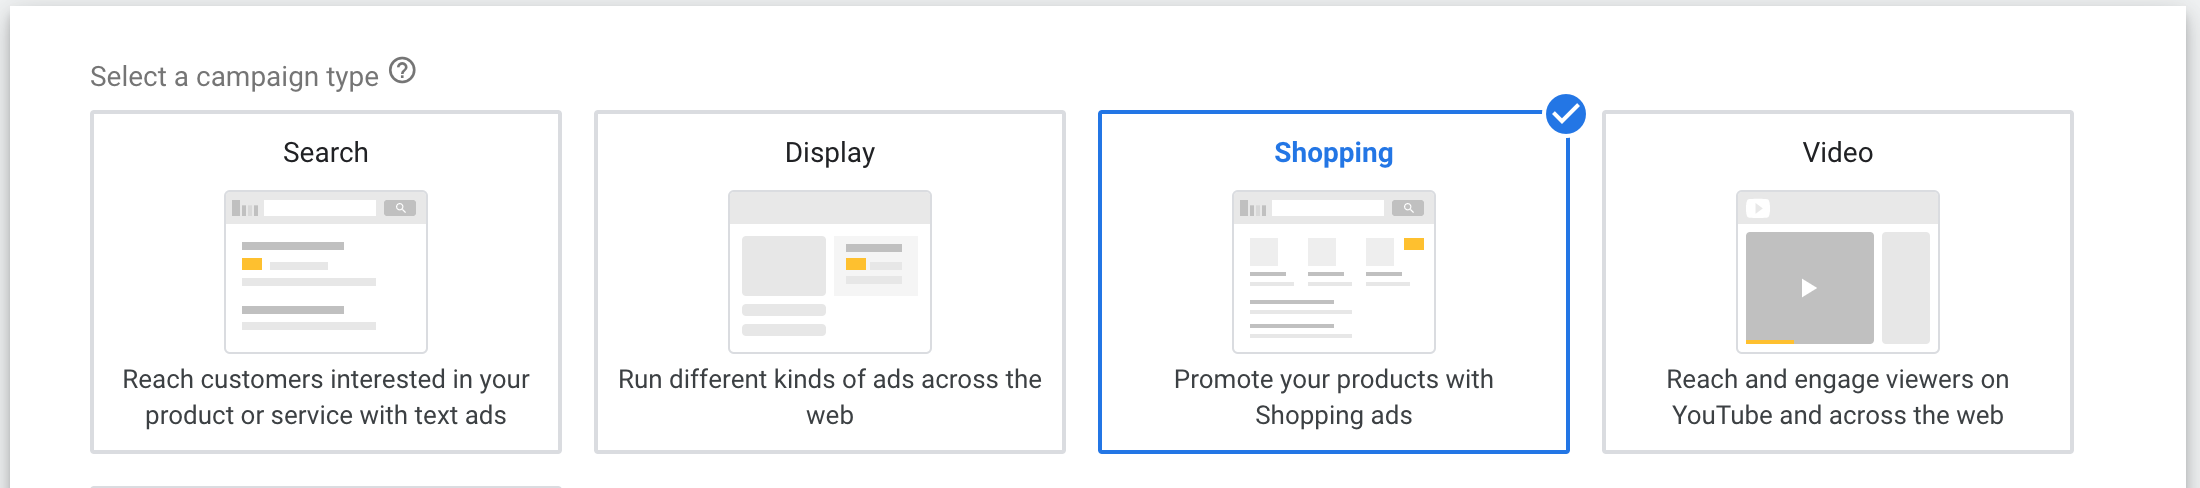 Google Ads: Campaign Type